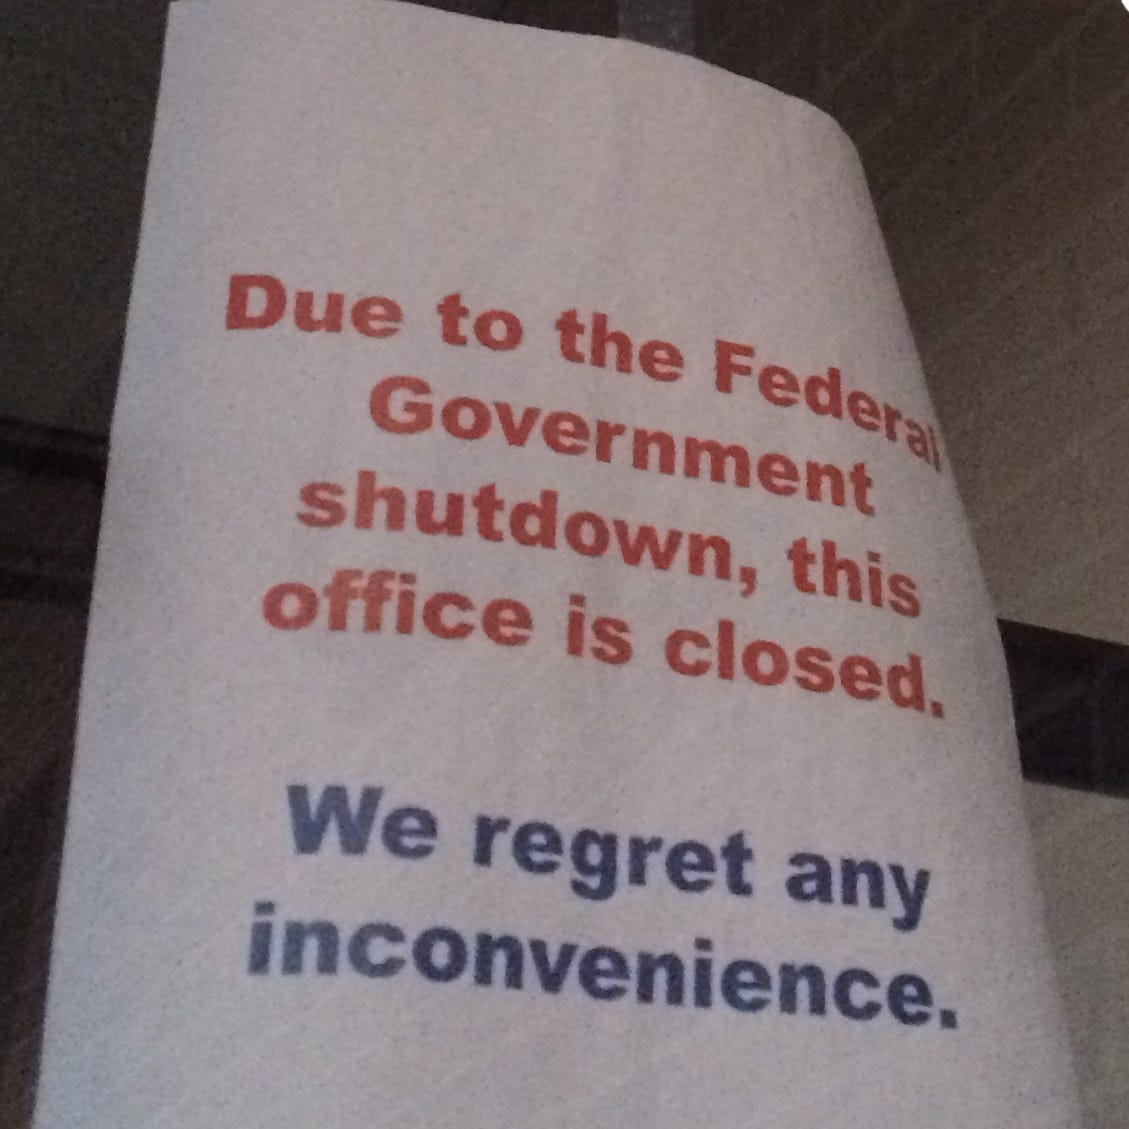 As shutdown continues, government reopening Farm Service Agency offices for 3 days to help farmers with loans, taxes